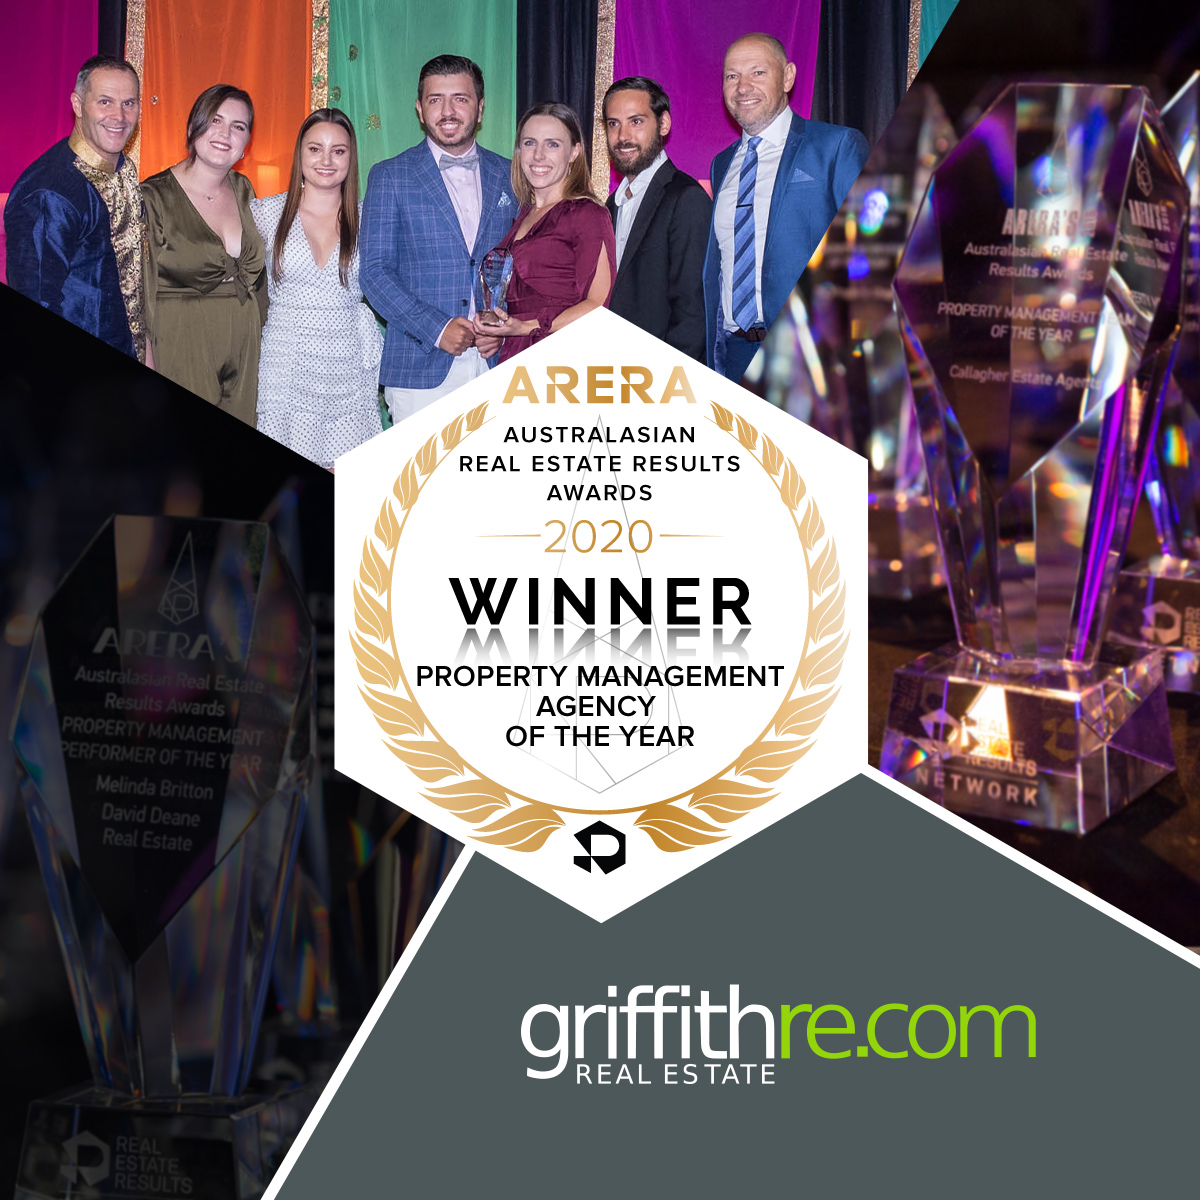 ARERAS20 Winner Social - PM Agency - Griffith